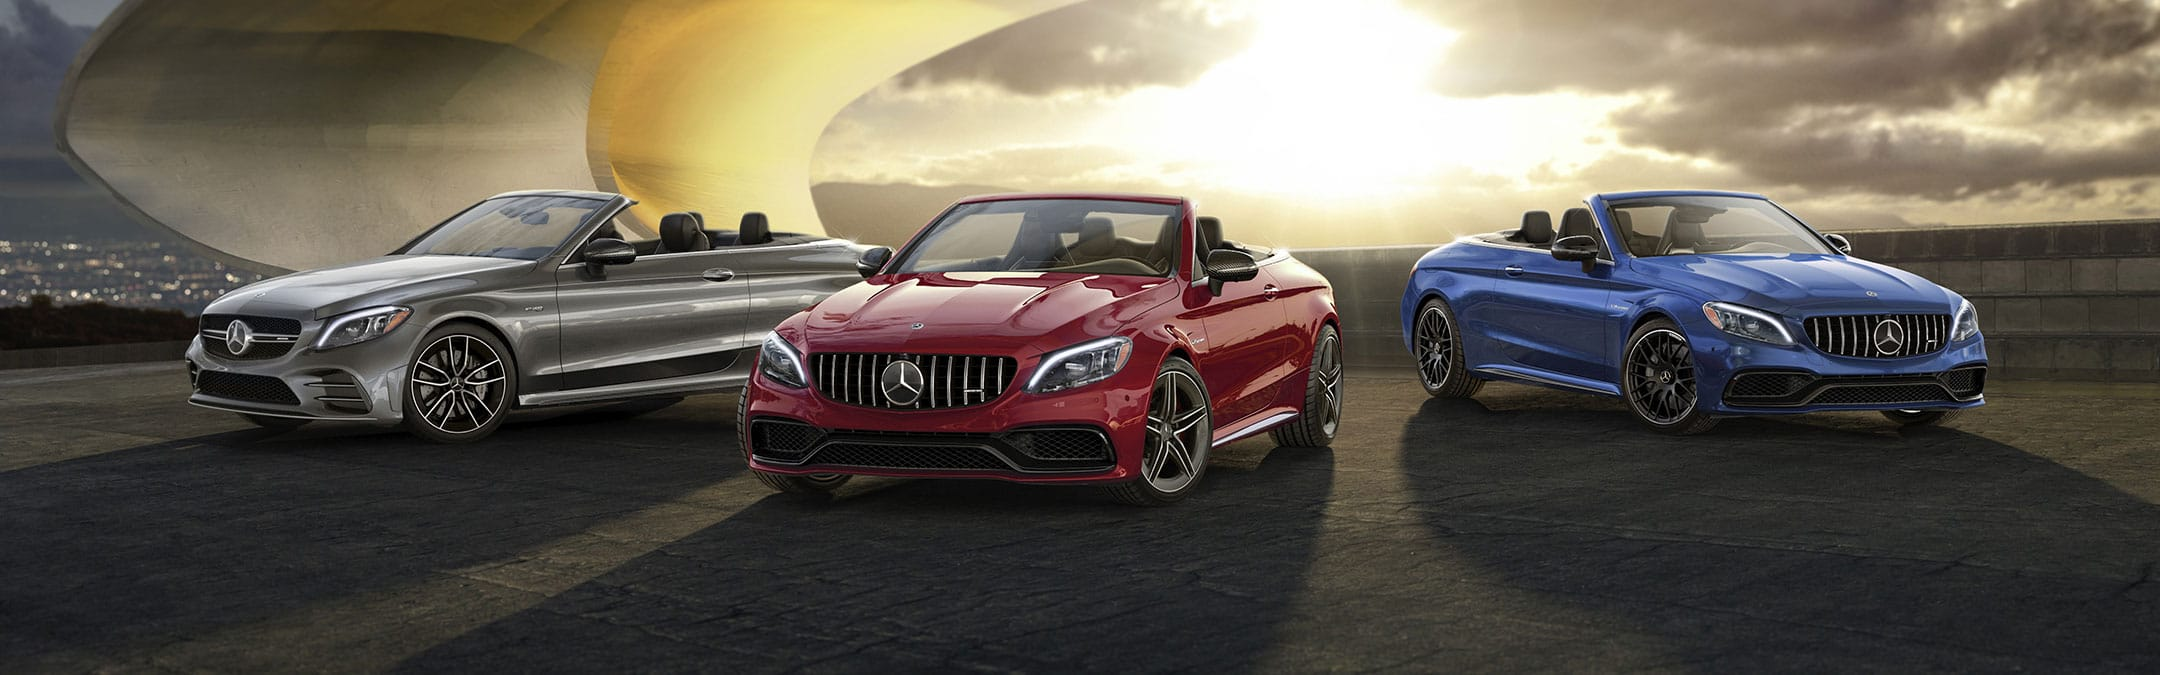 2020 Mercedes-AMG C-Class Cabriolet